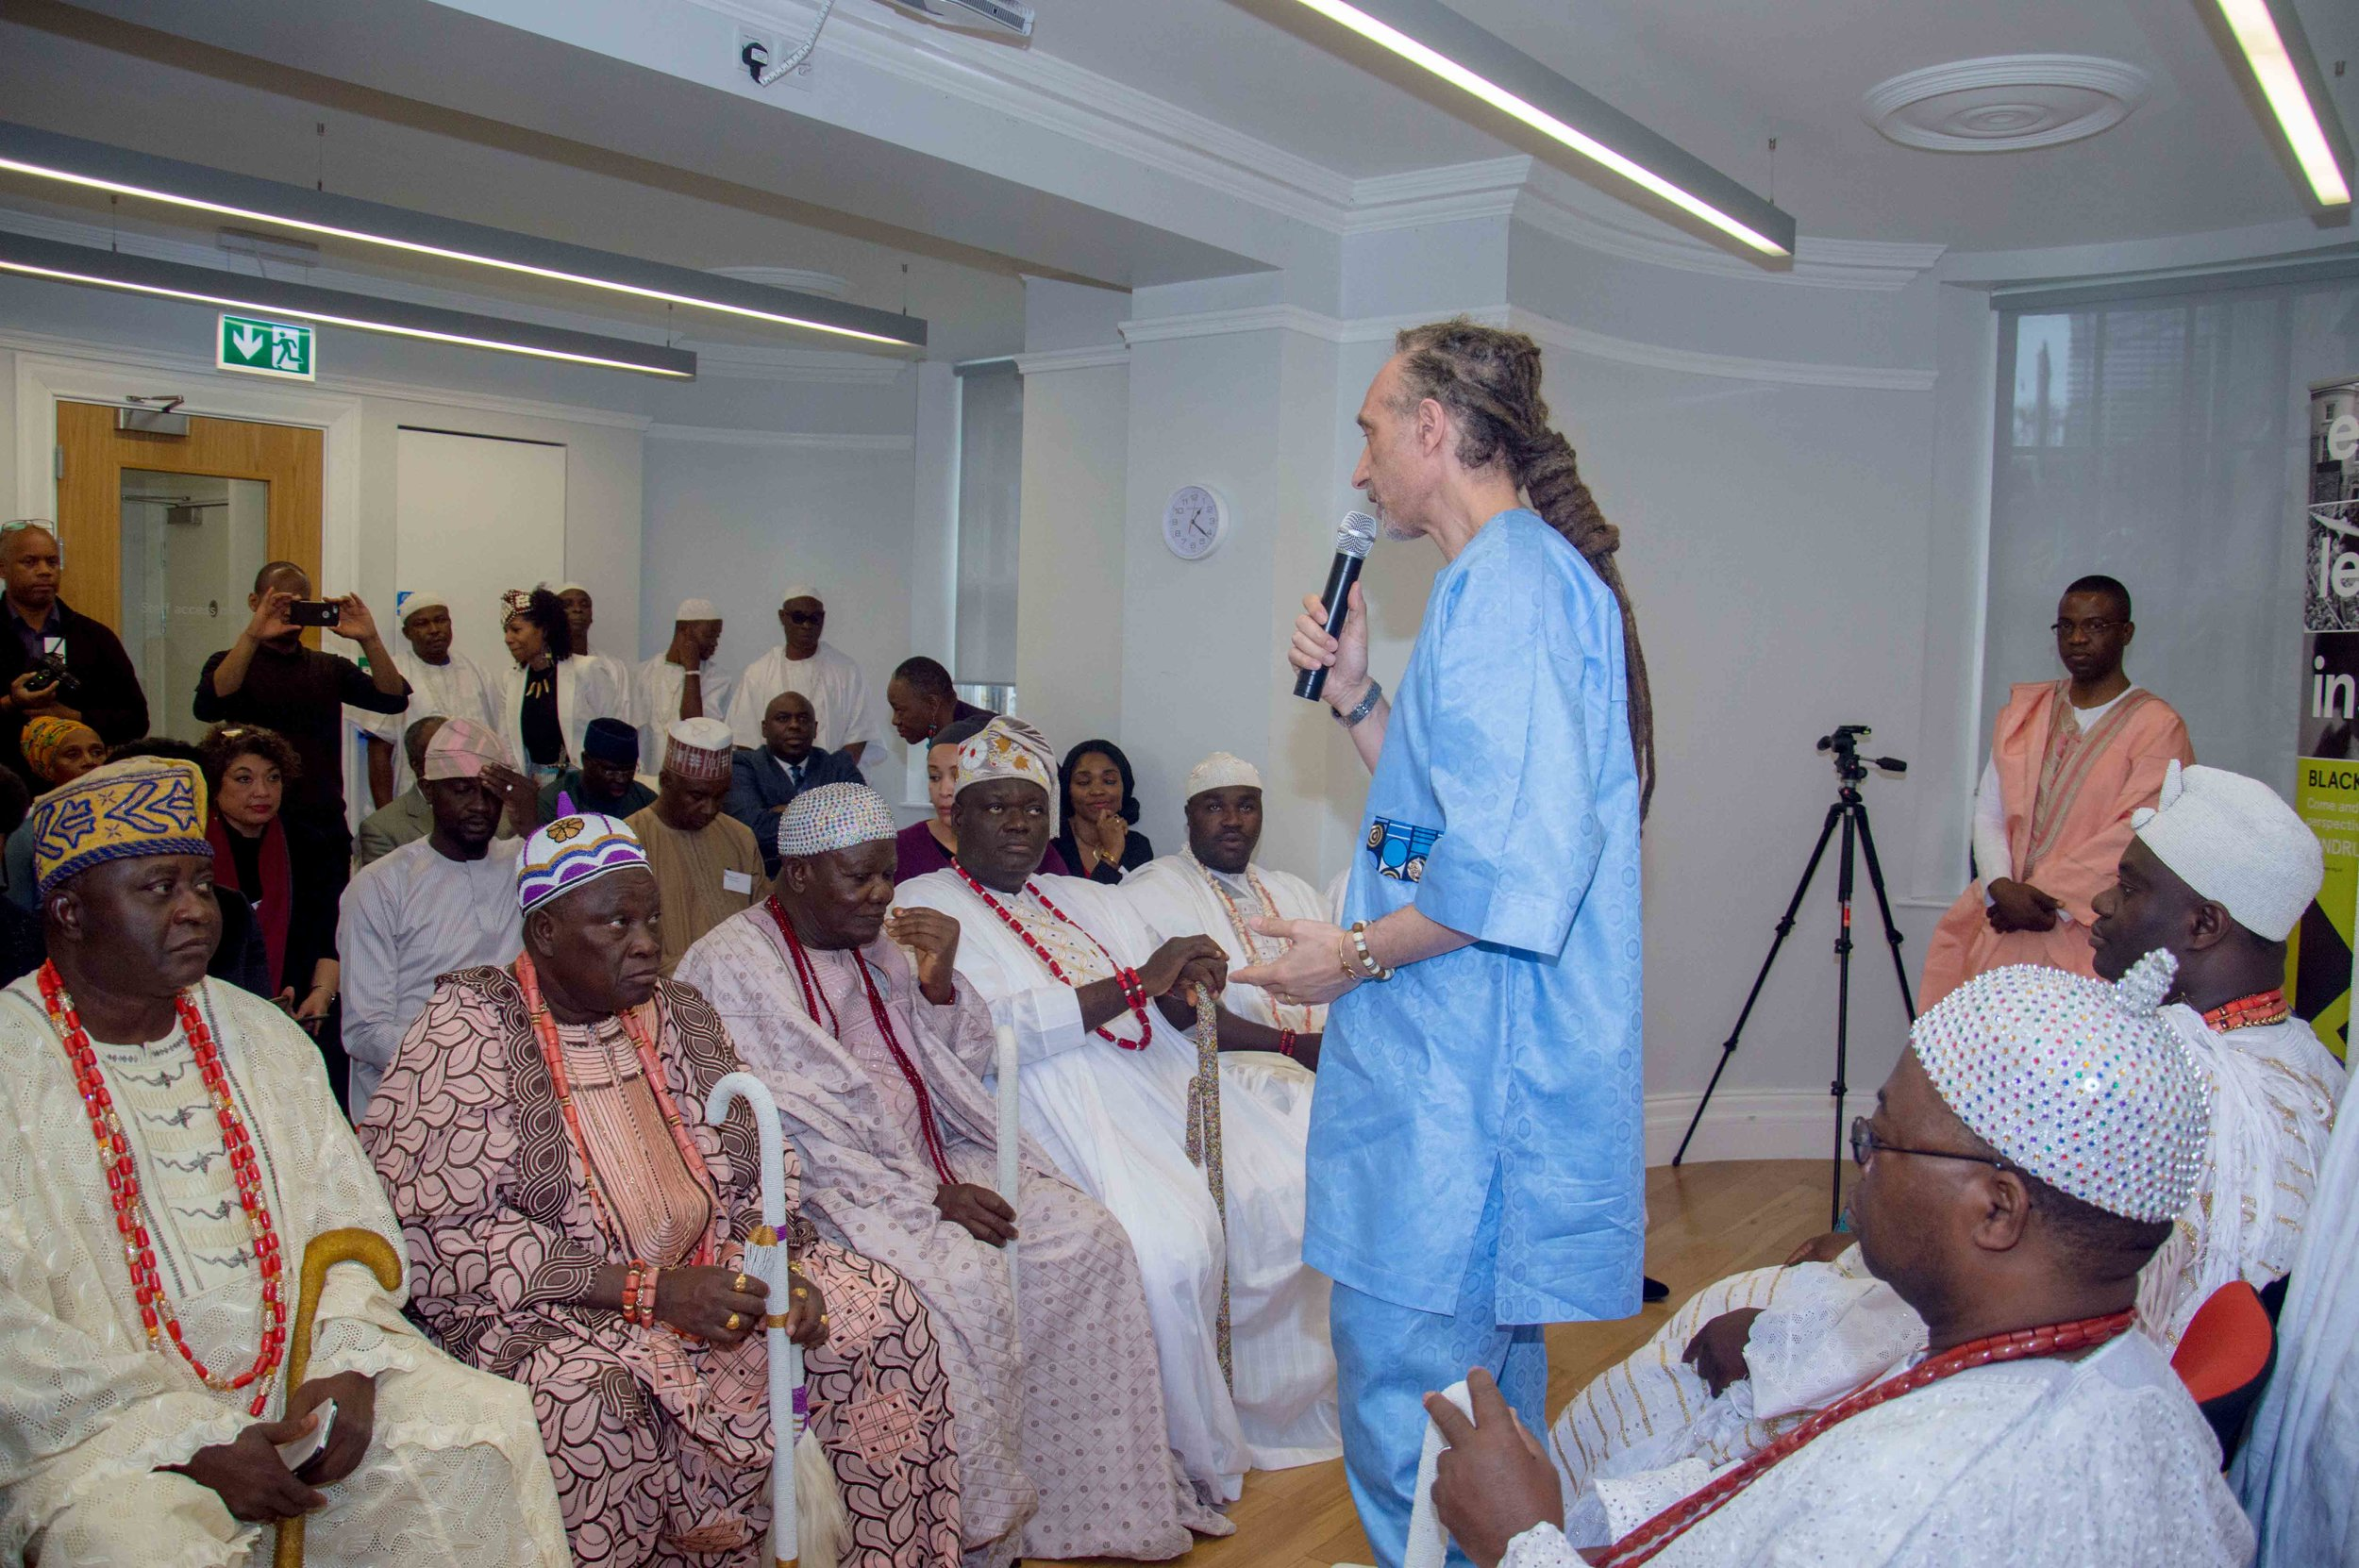 The Ooni of Ife visit to Black Cultural Archives